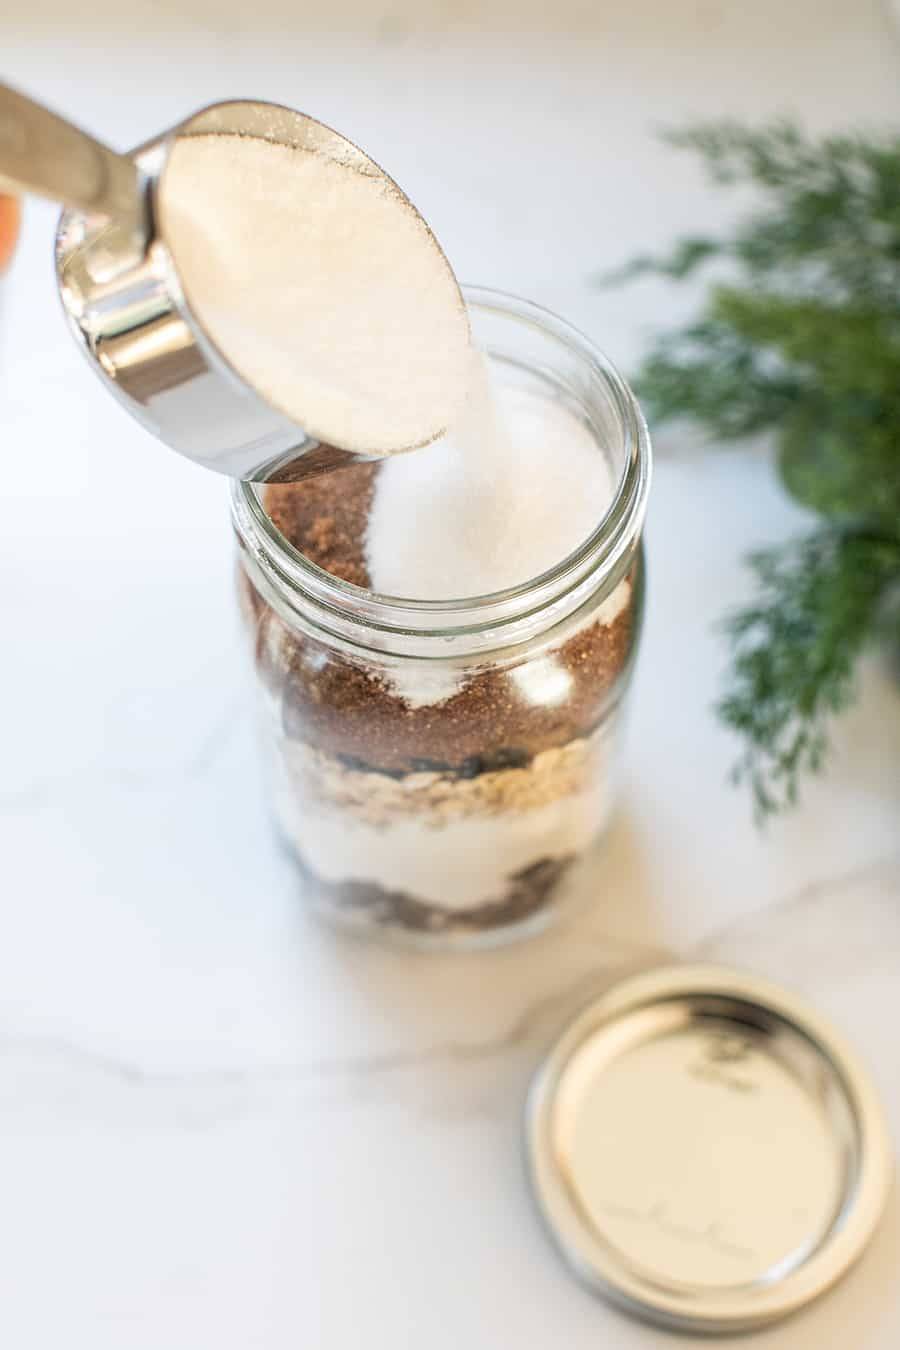 Pouring sugar to cookie mix in a jar